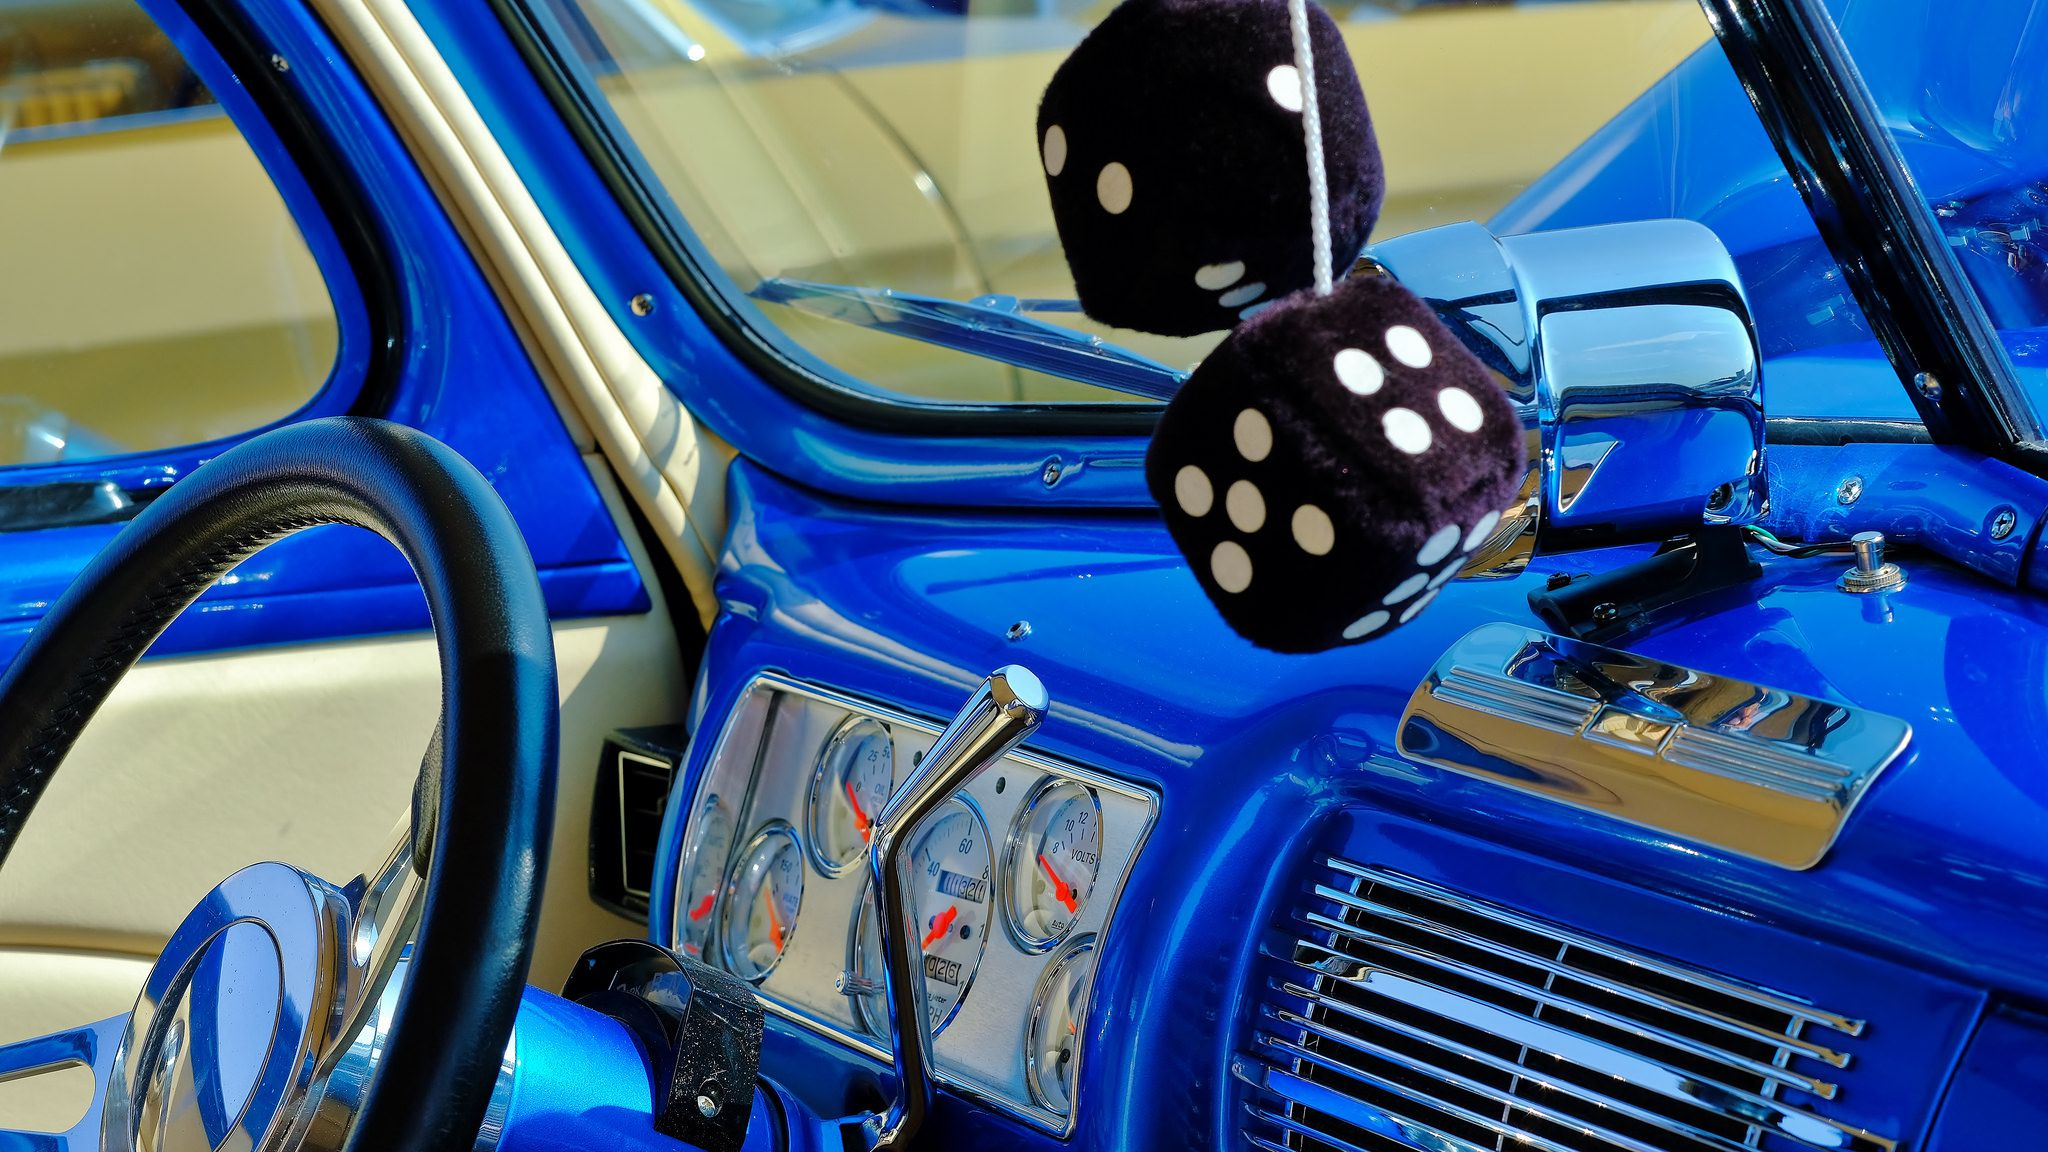 Car Repair And Maintenance >> The Surprising History and Symbolism of Fuzzy Dice